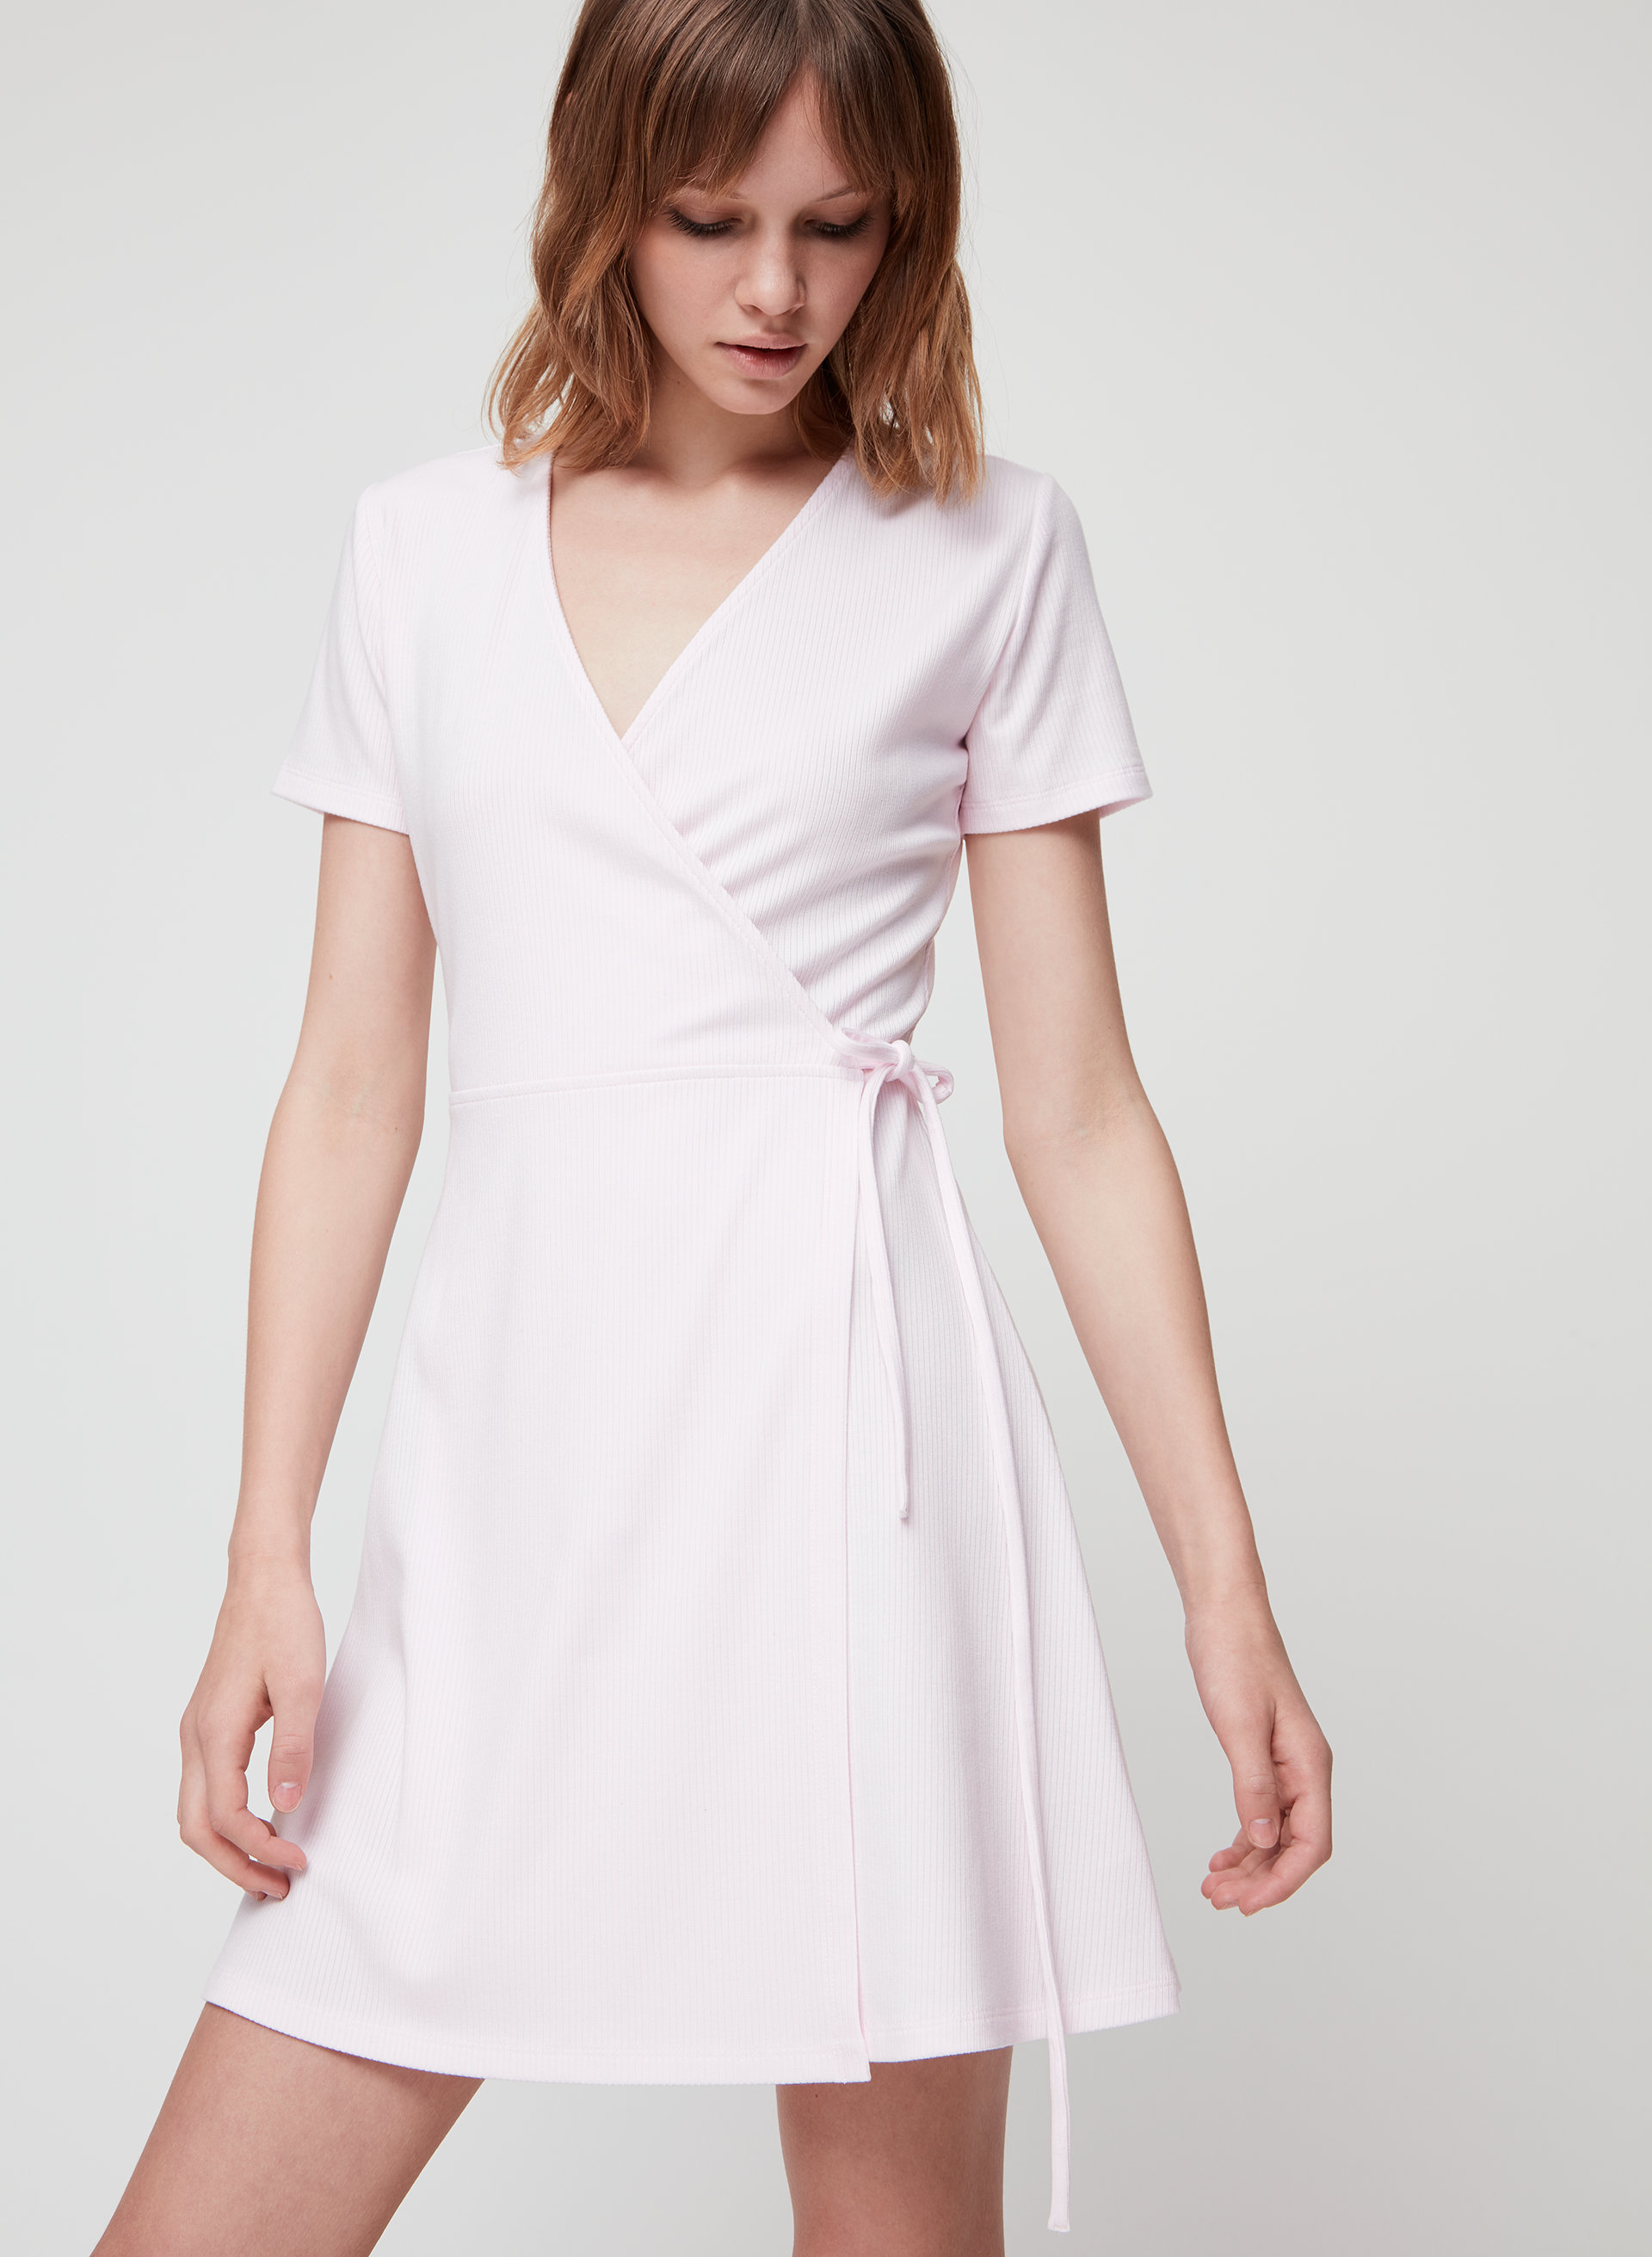 c24269446dd8 Sunday Best GISELLE DRESS | Aritzia US